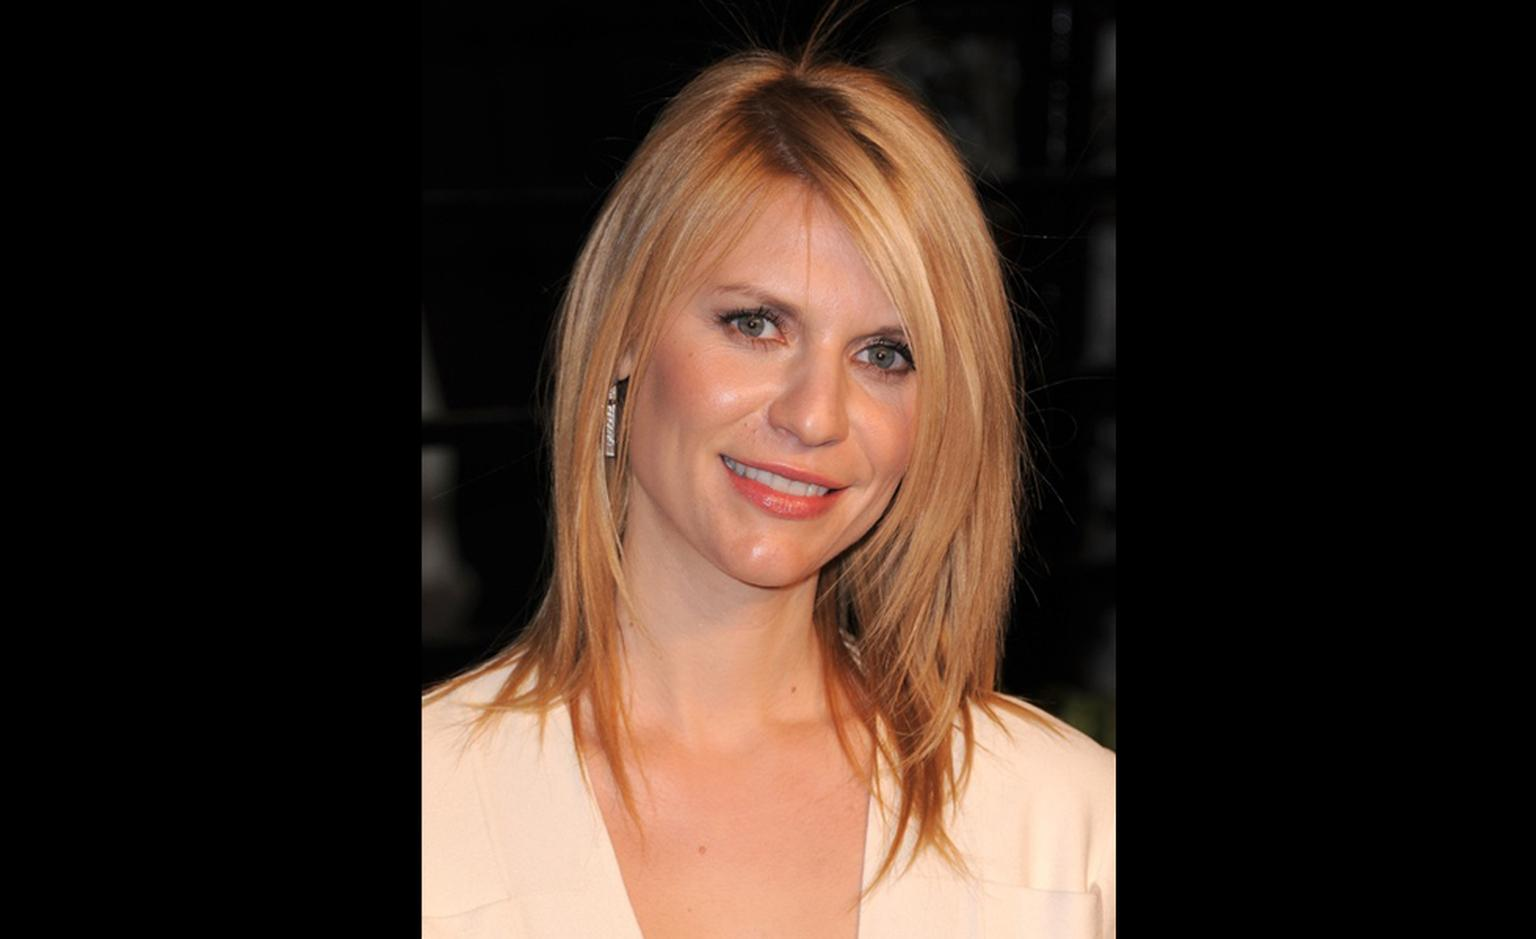 Claire Danes at the Vanity Fair Oscars Party wearing Traffic earrings by Harry Winston earrings